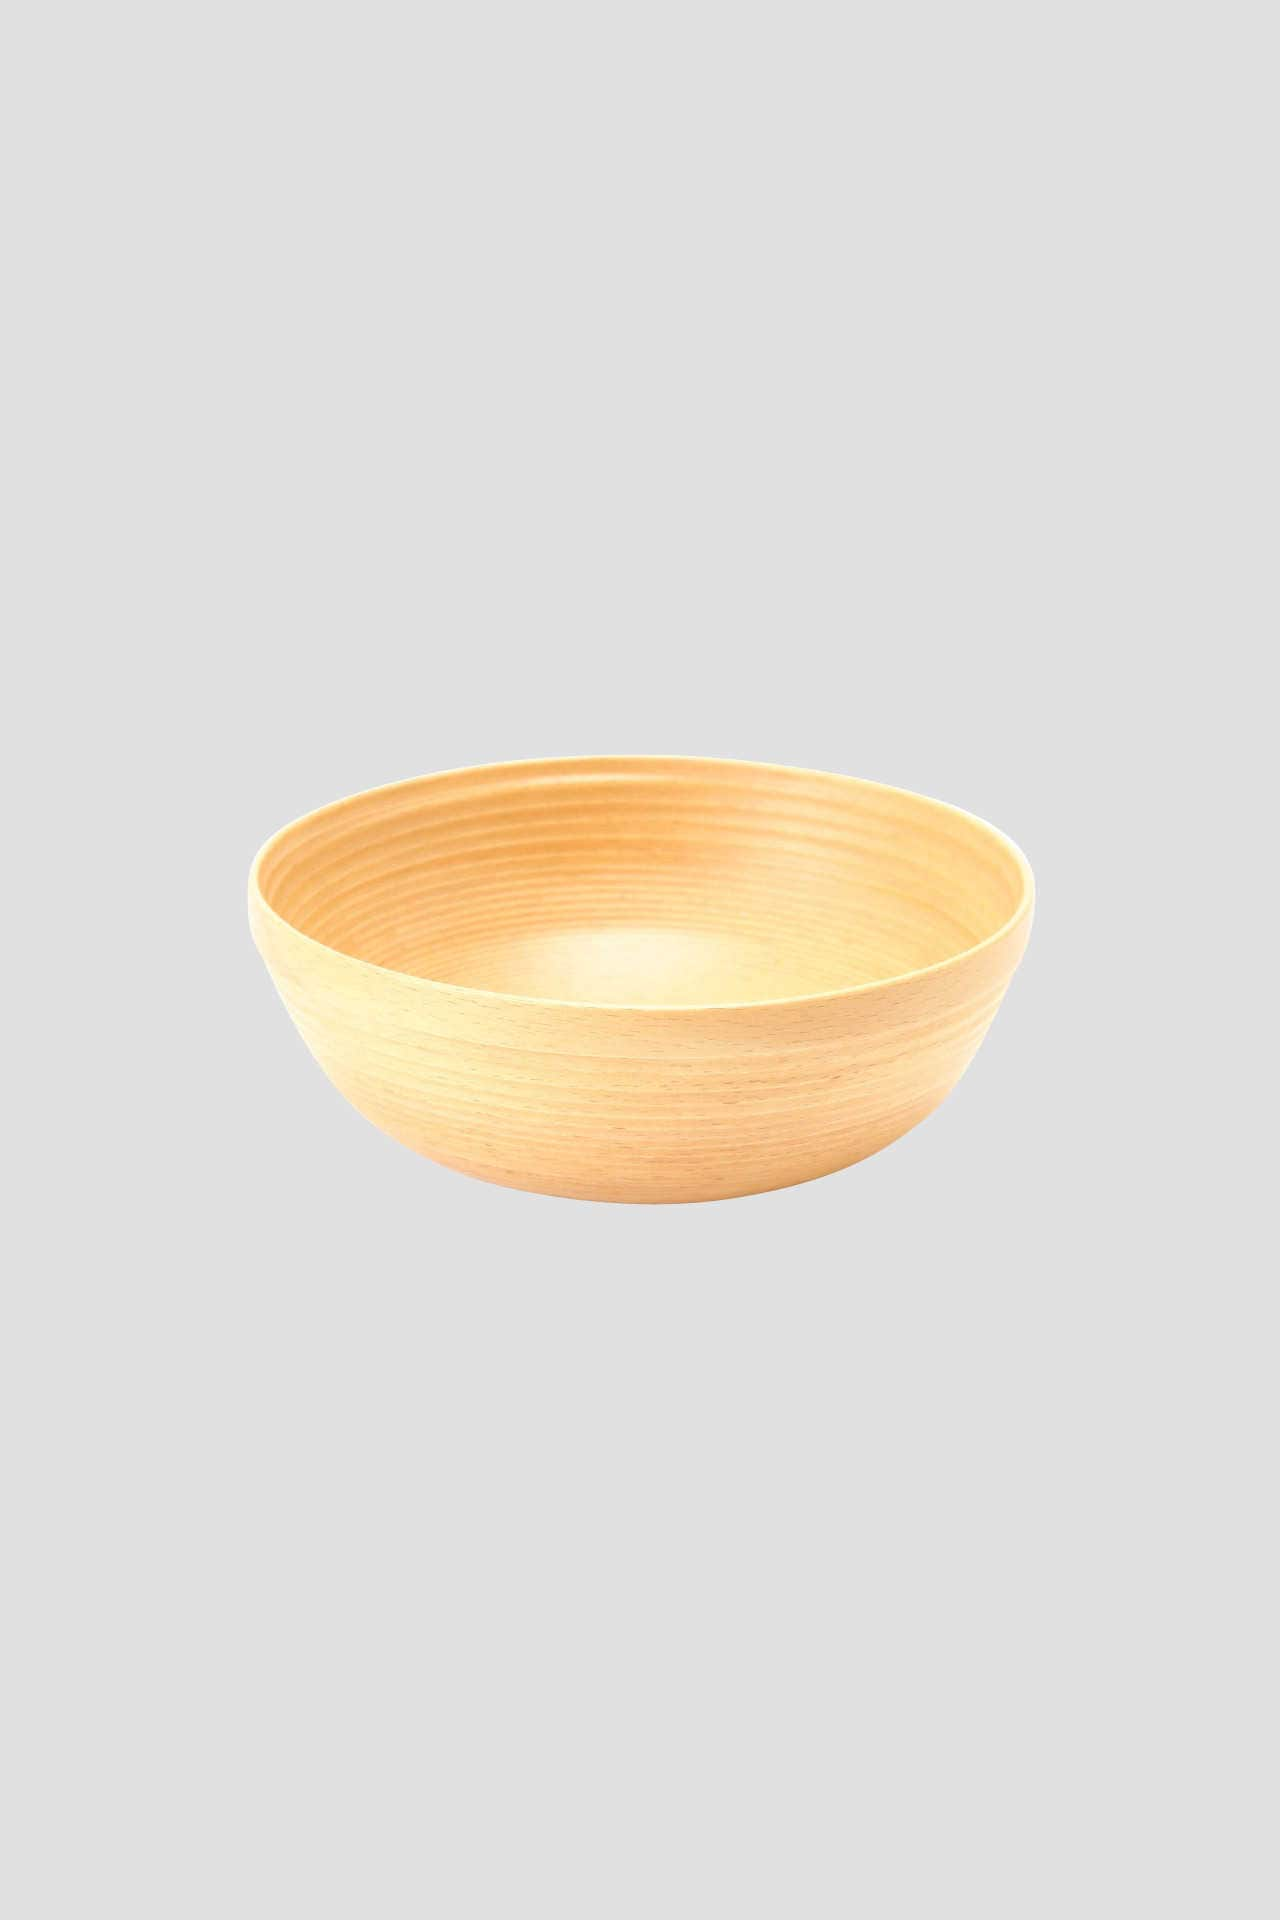 BUNACO ORIGINAL BOWL SMALL1